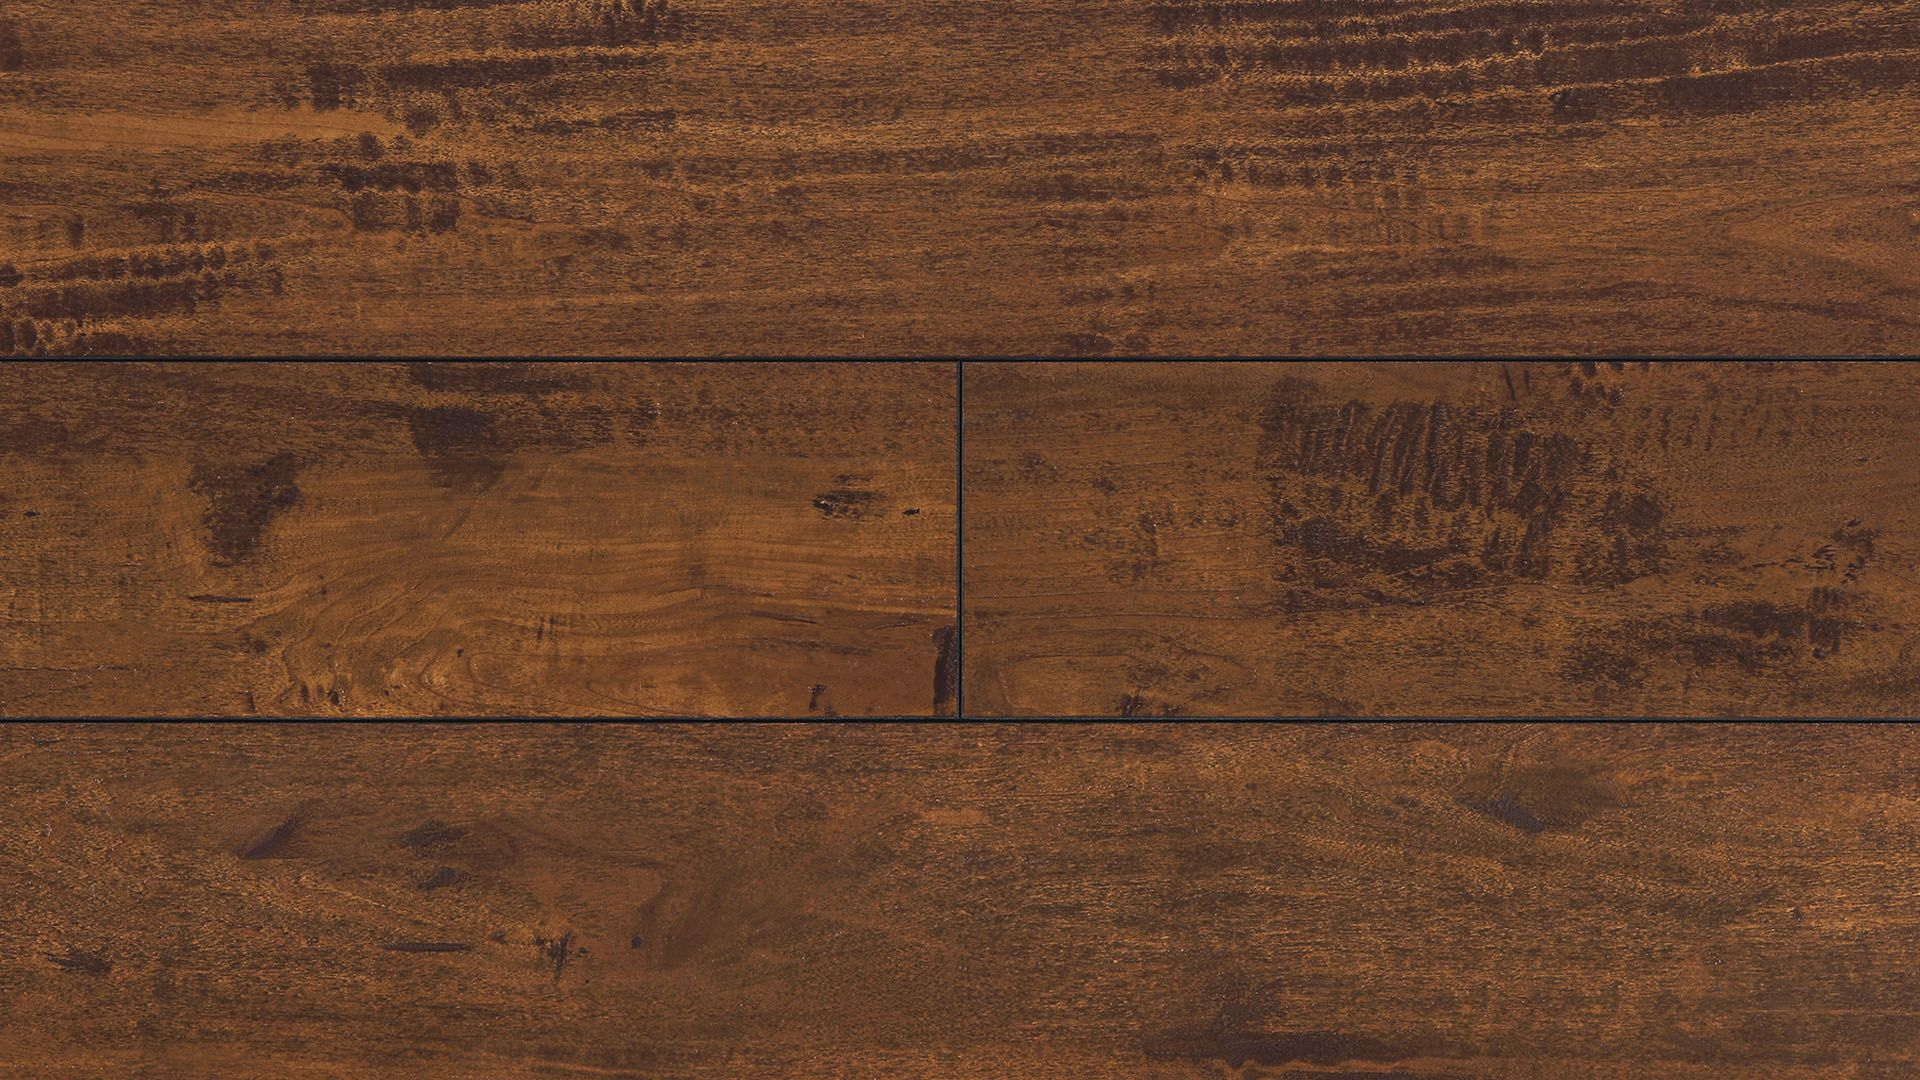 Image Result For Prospector Gold Rush Laminate Wood Veneer